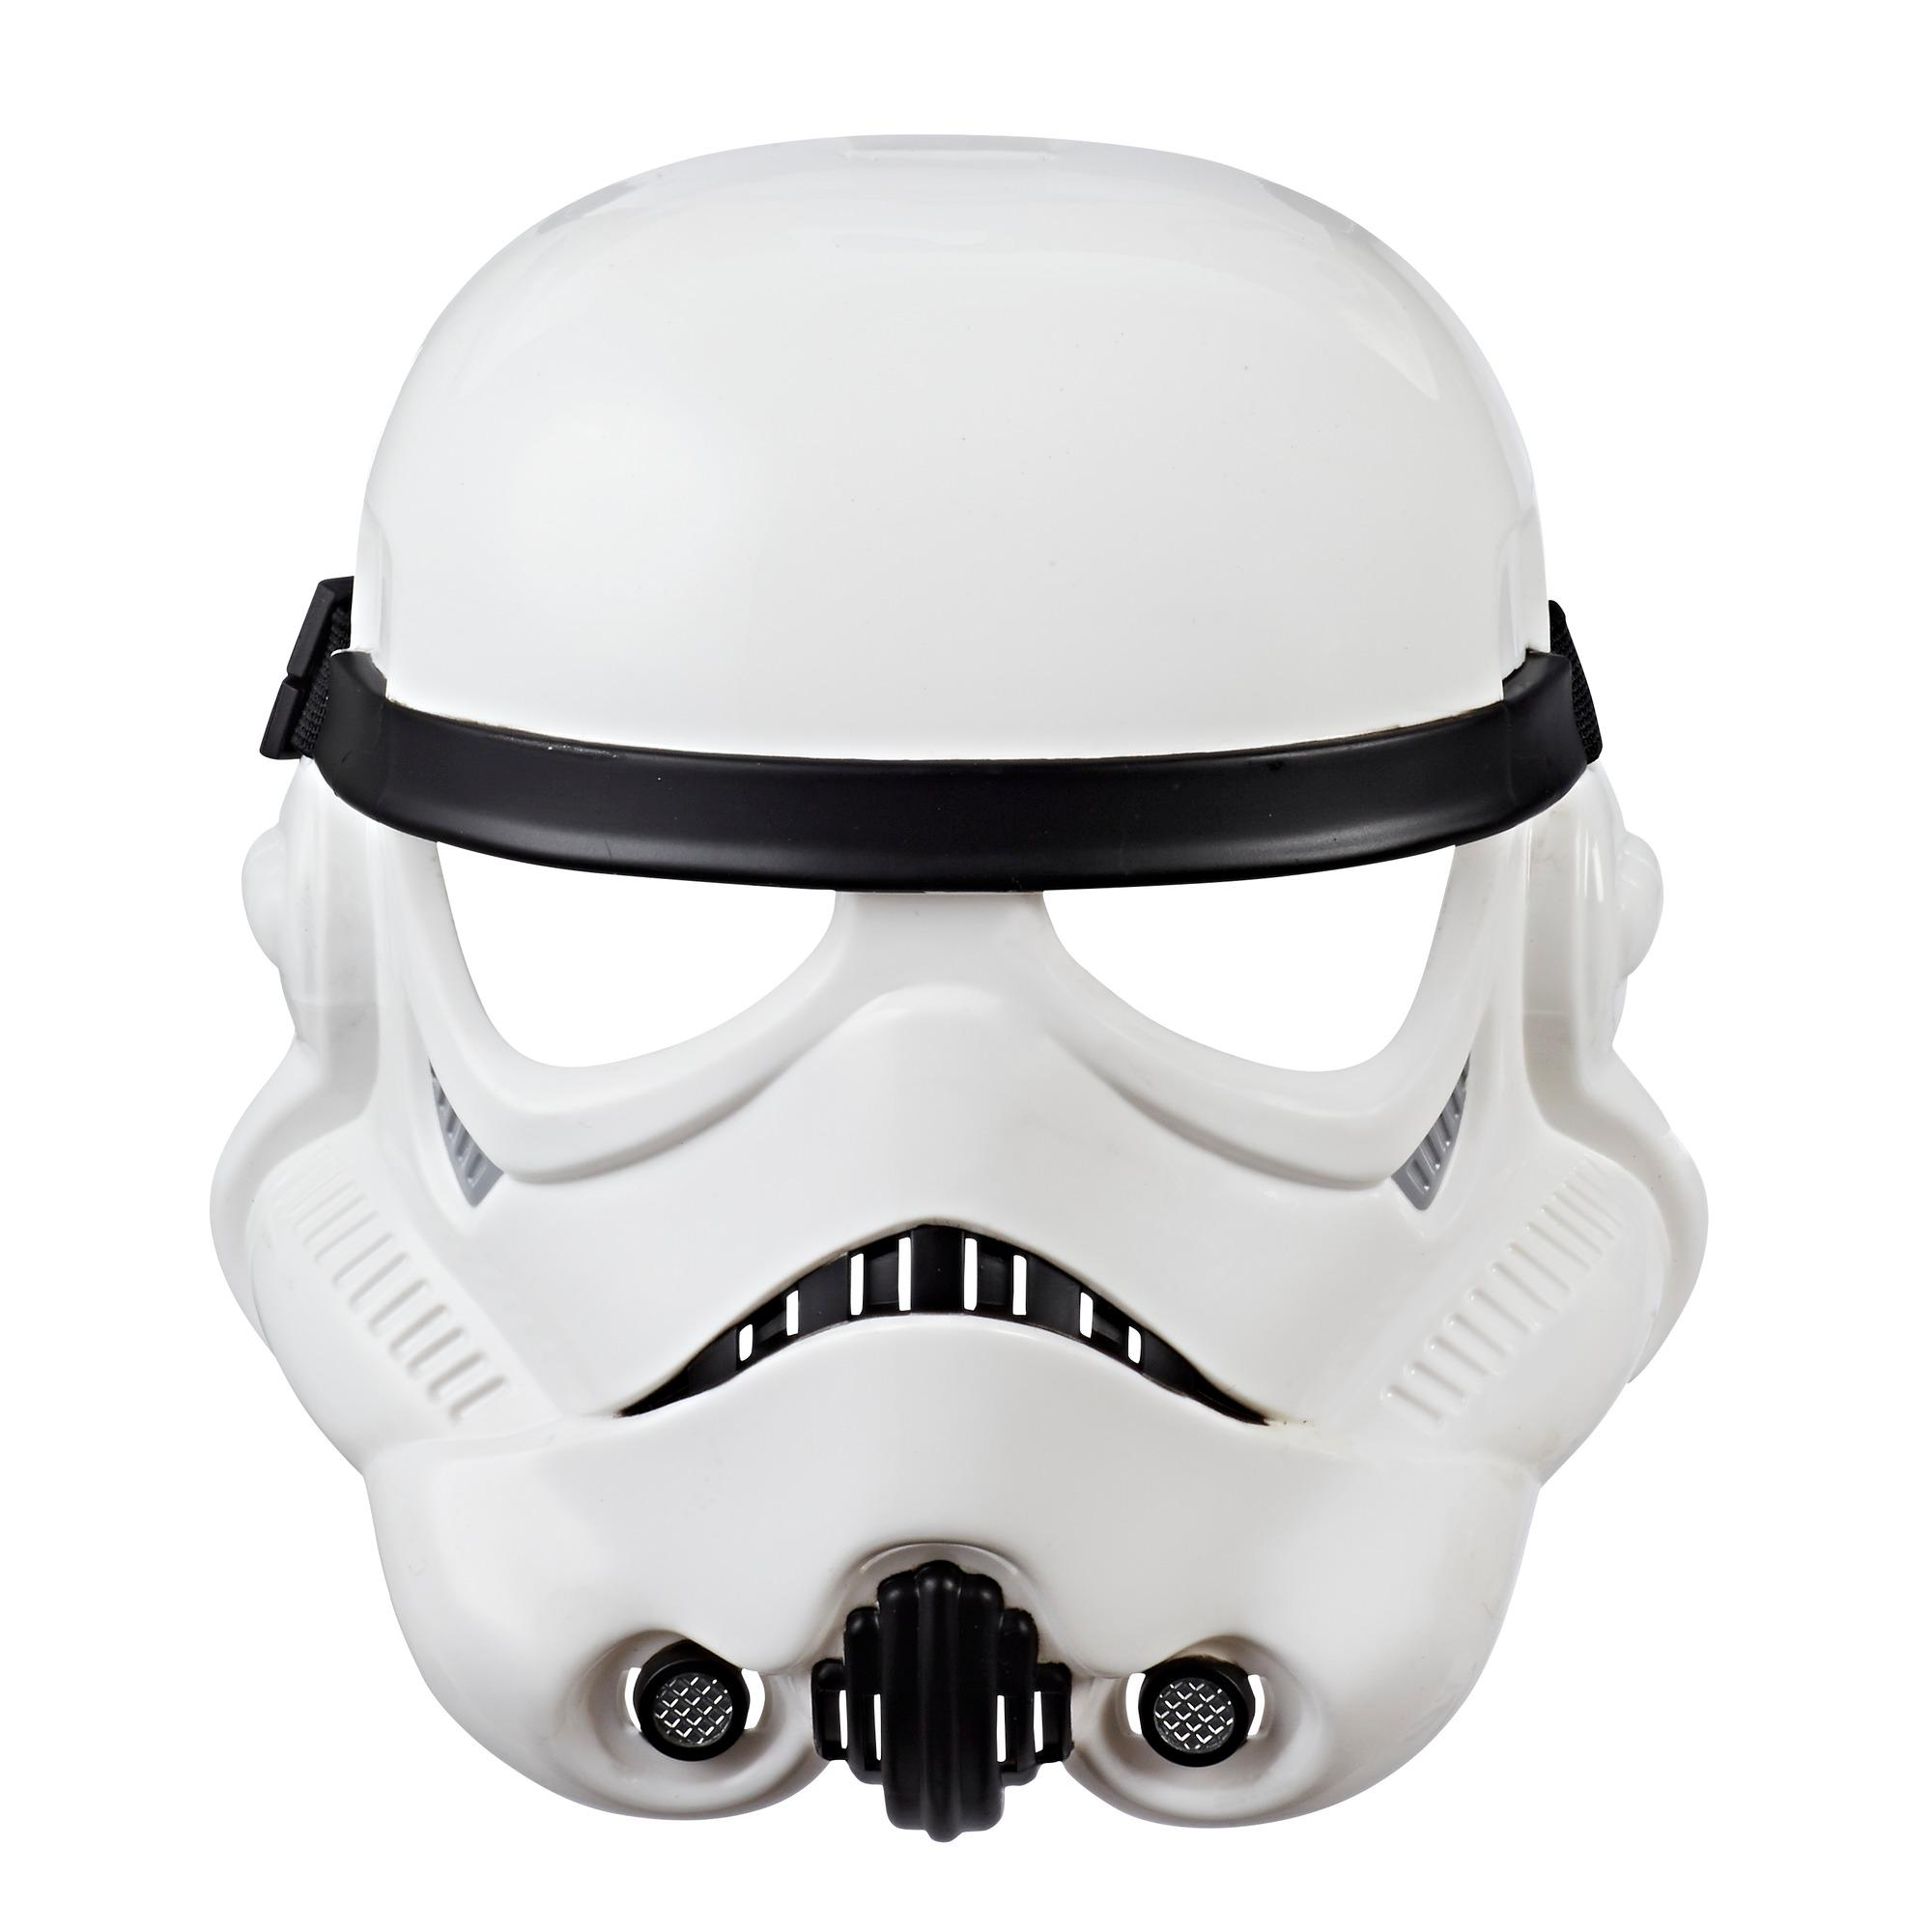 STAR WARS - MASQUE BASIQUE DE VESTA TROOPER